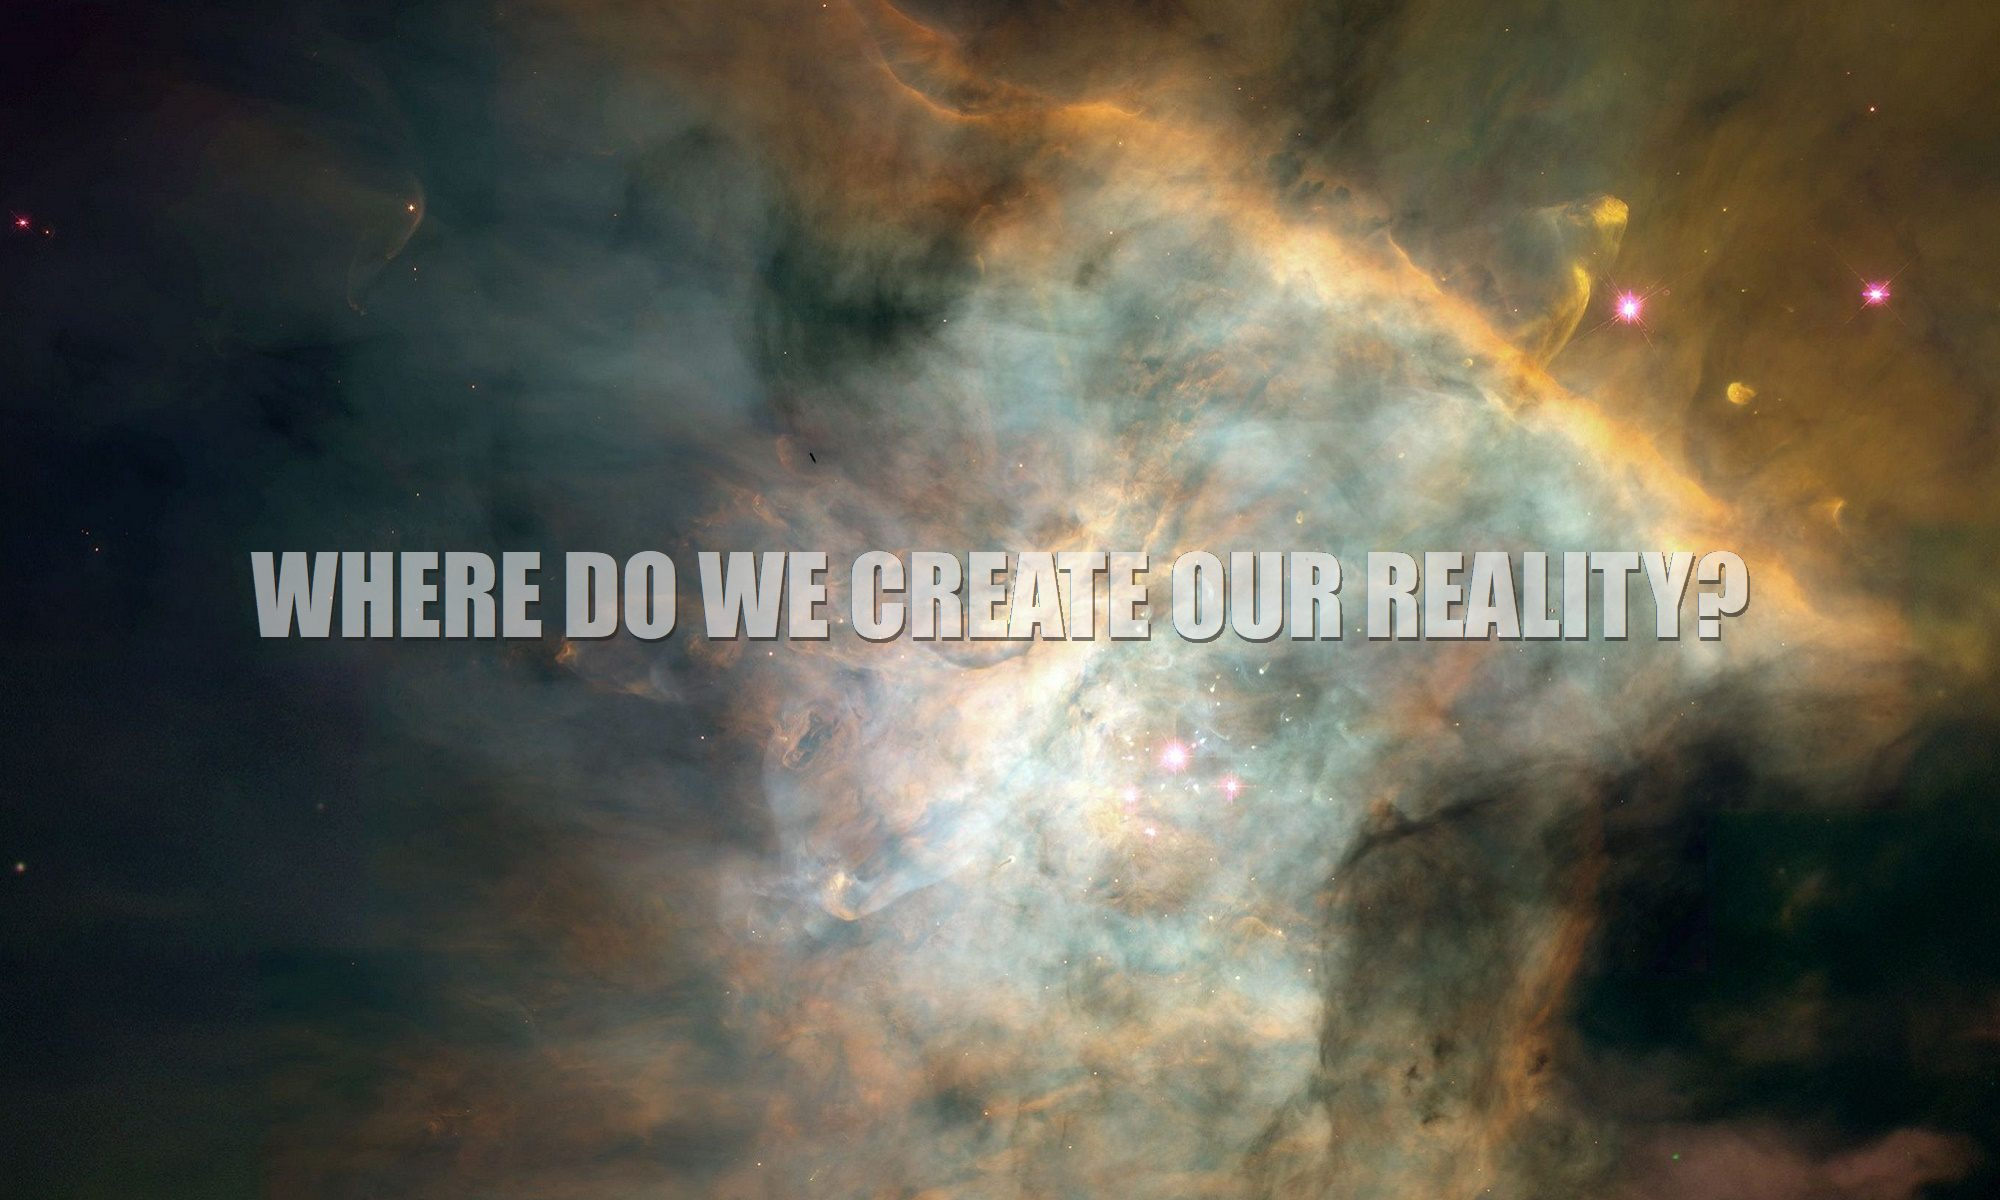 Where-do-we-i-create-our-my-reality-at-9900-2000